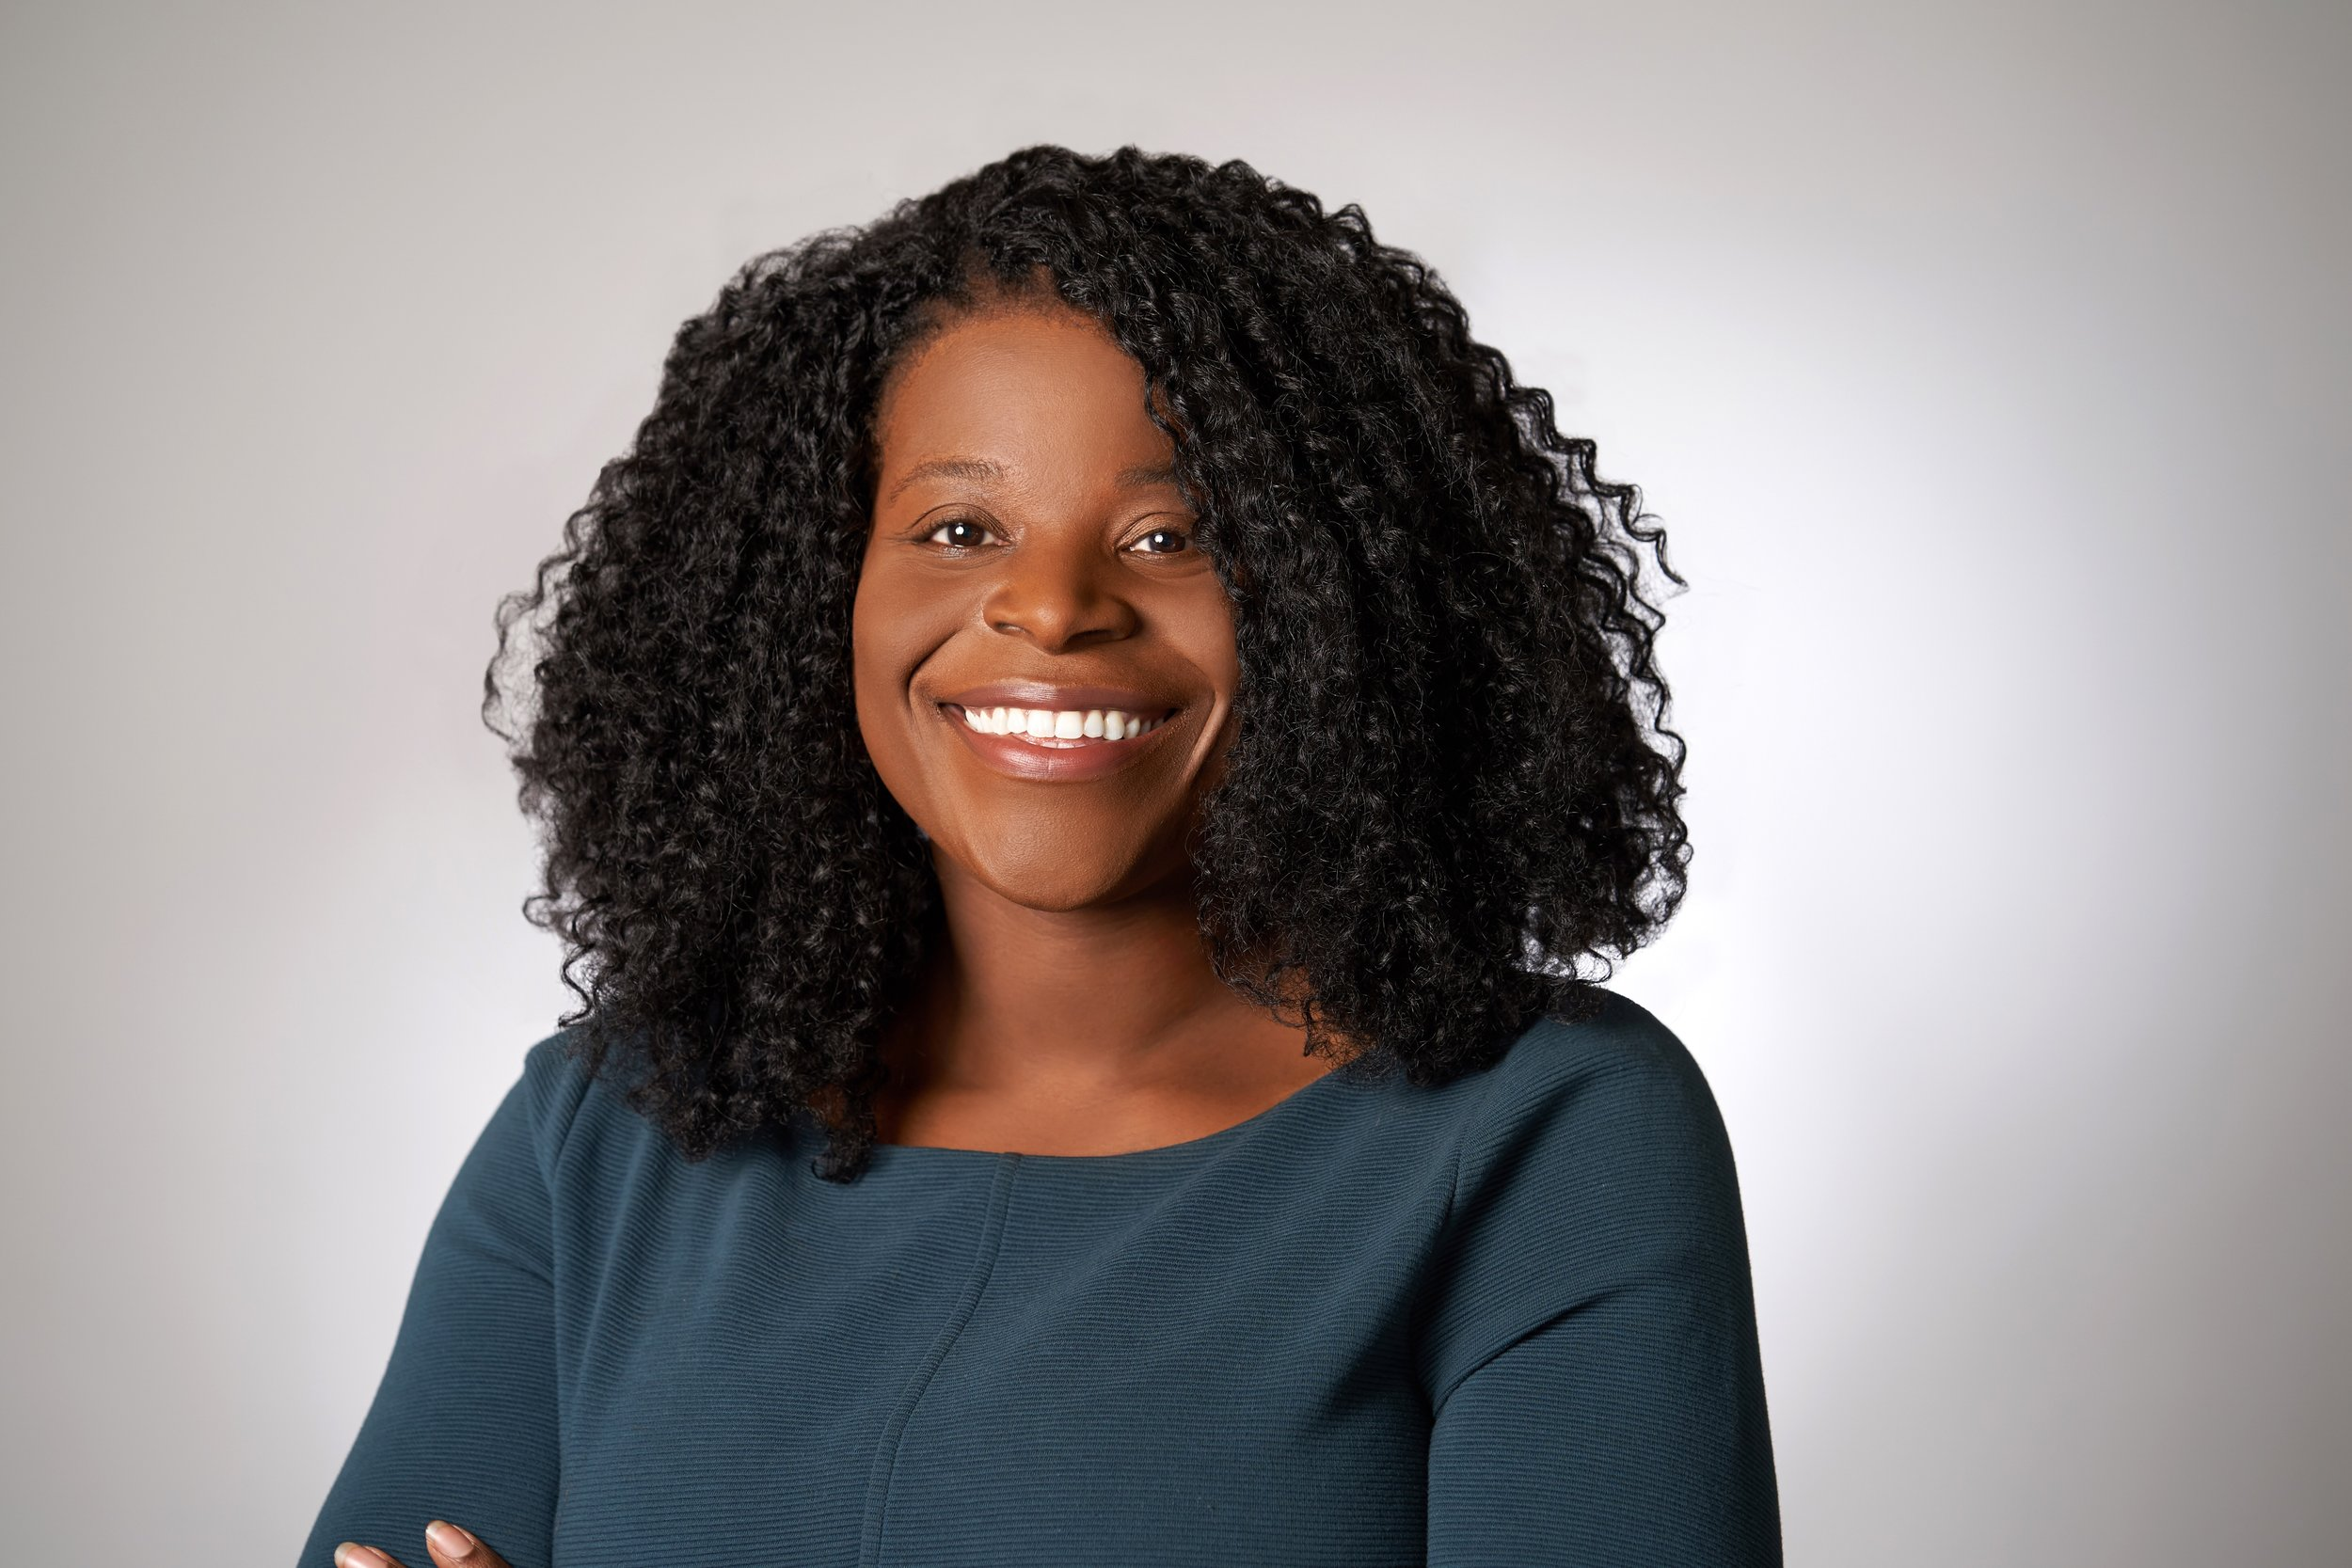 Linda Etim   Linda Etim is the Senior Advisor on Africa Policy for the Bill and Linda Gates Foundation. She was a Former Assistant Administrator, US Agency for International Development. She was also the Director for African Affairs at the National Security Council. .